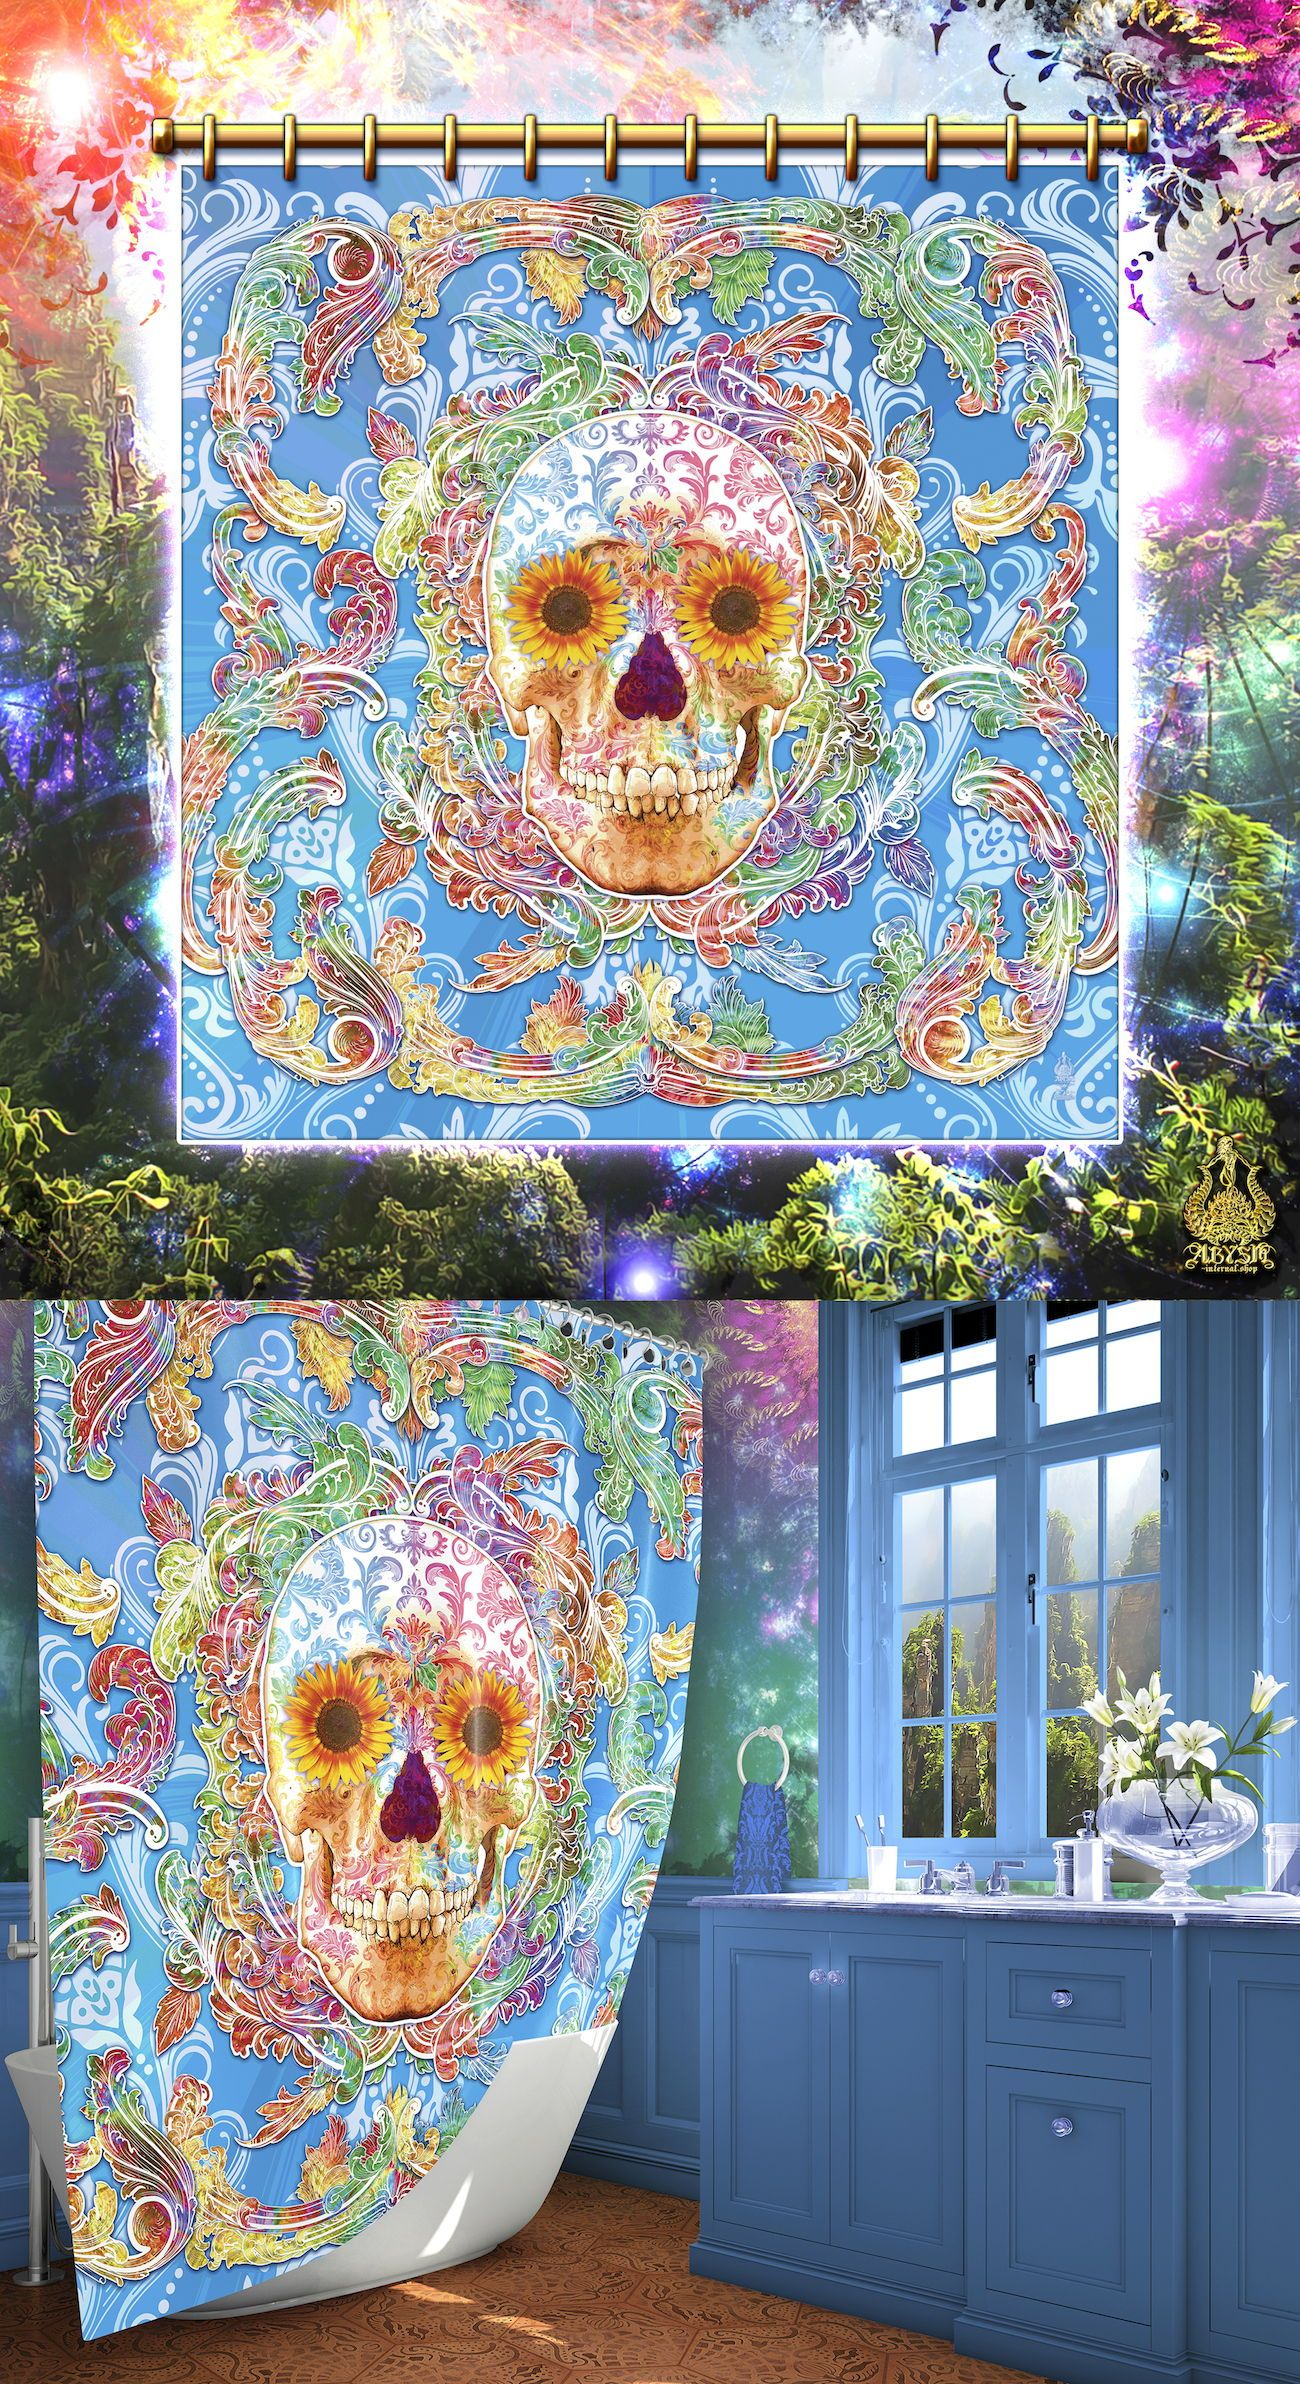 Sugar Skull Shower Curtain With Flowers Day Of The Dead Funky Artsy Home Decor Sugar Skull Shower Curtain Skull Shower Curtain Psychedelic Decor